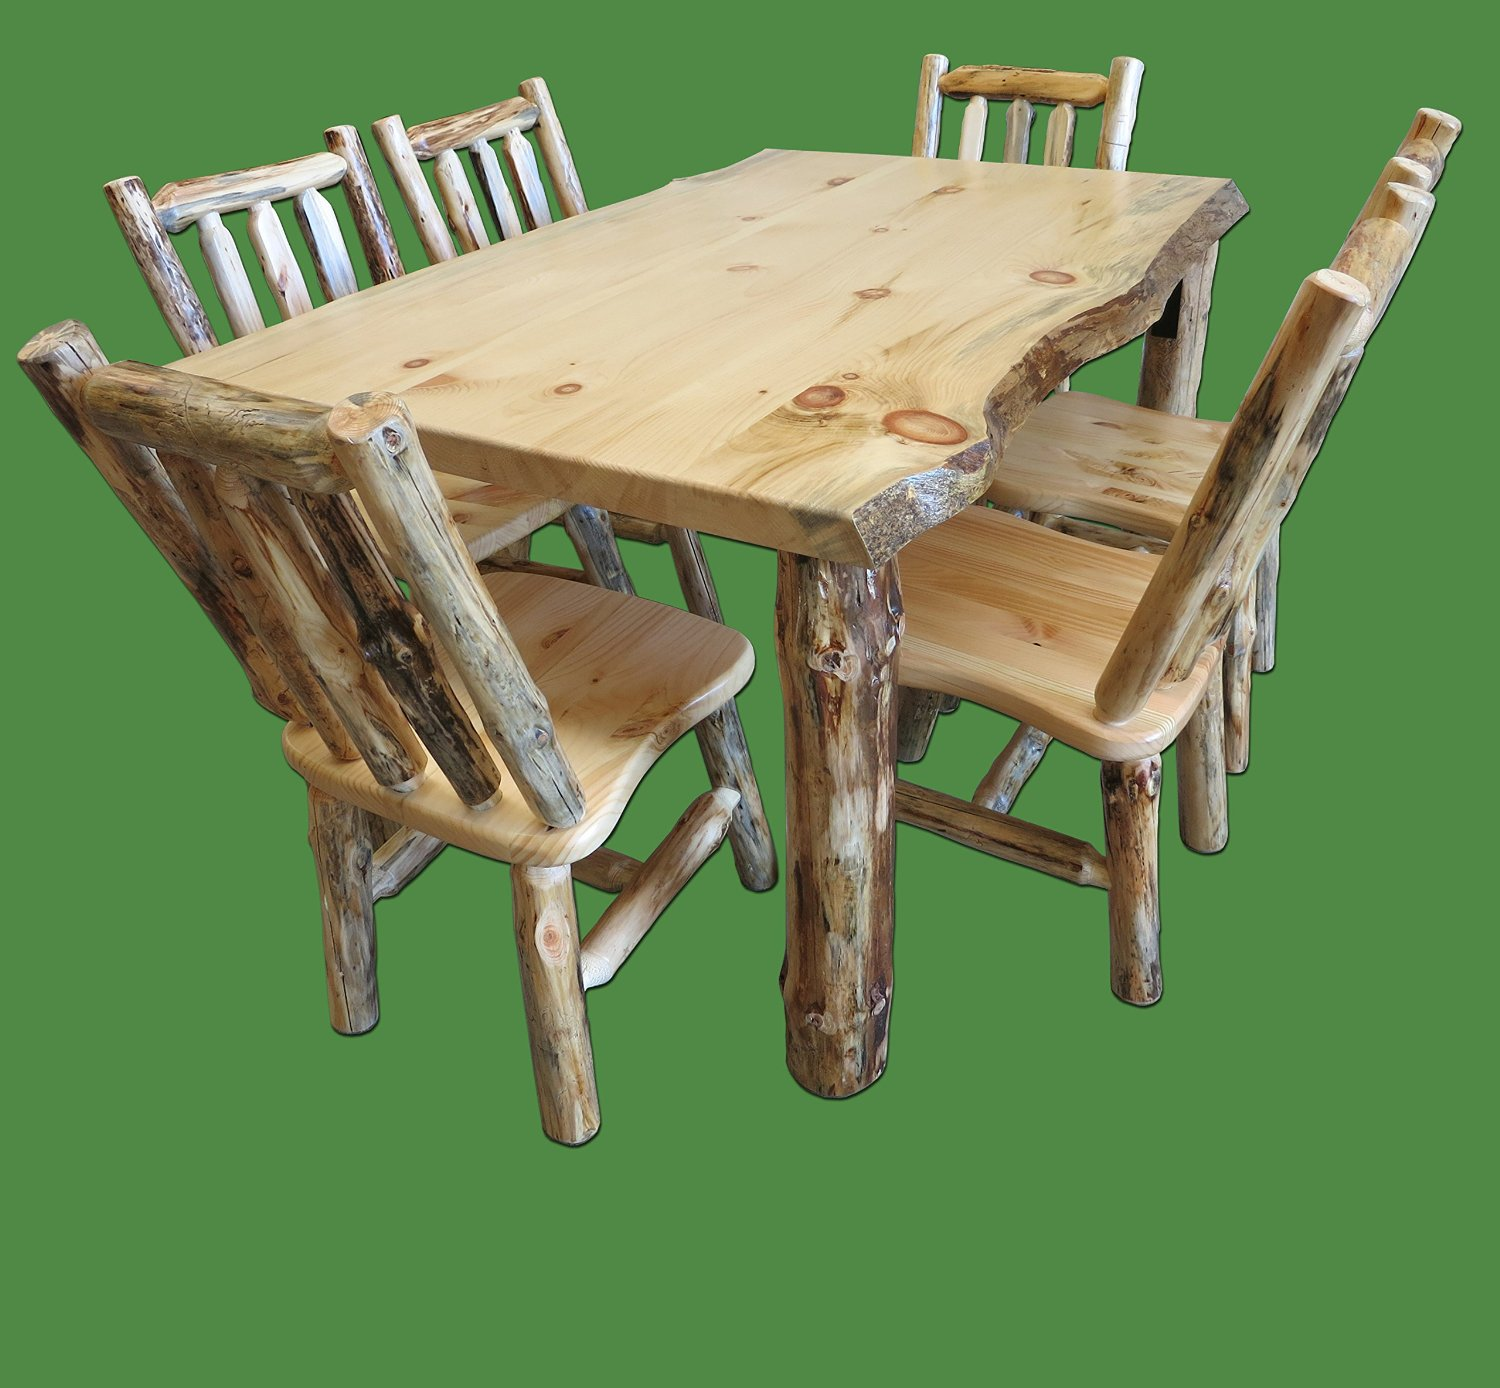 Get Quotations Midwest Log Furniture Rustic Pine Dining Table W 6 Chairs